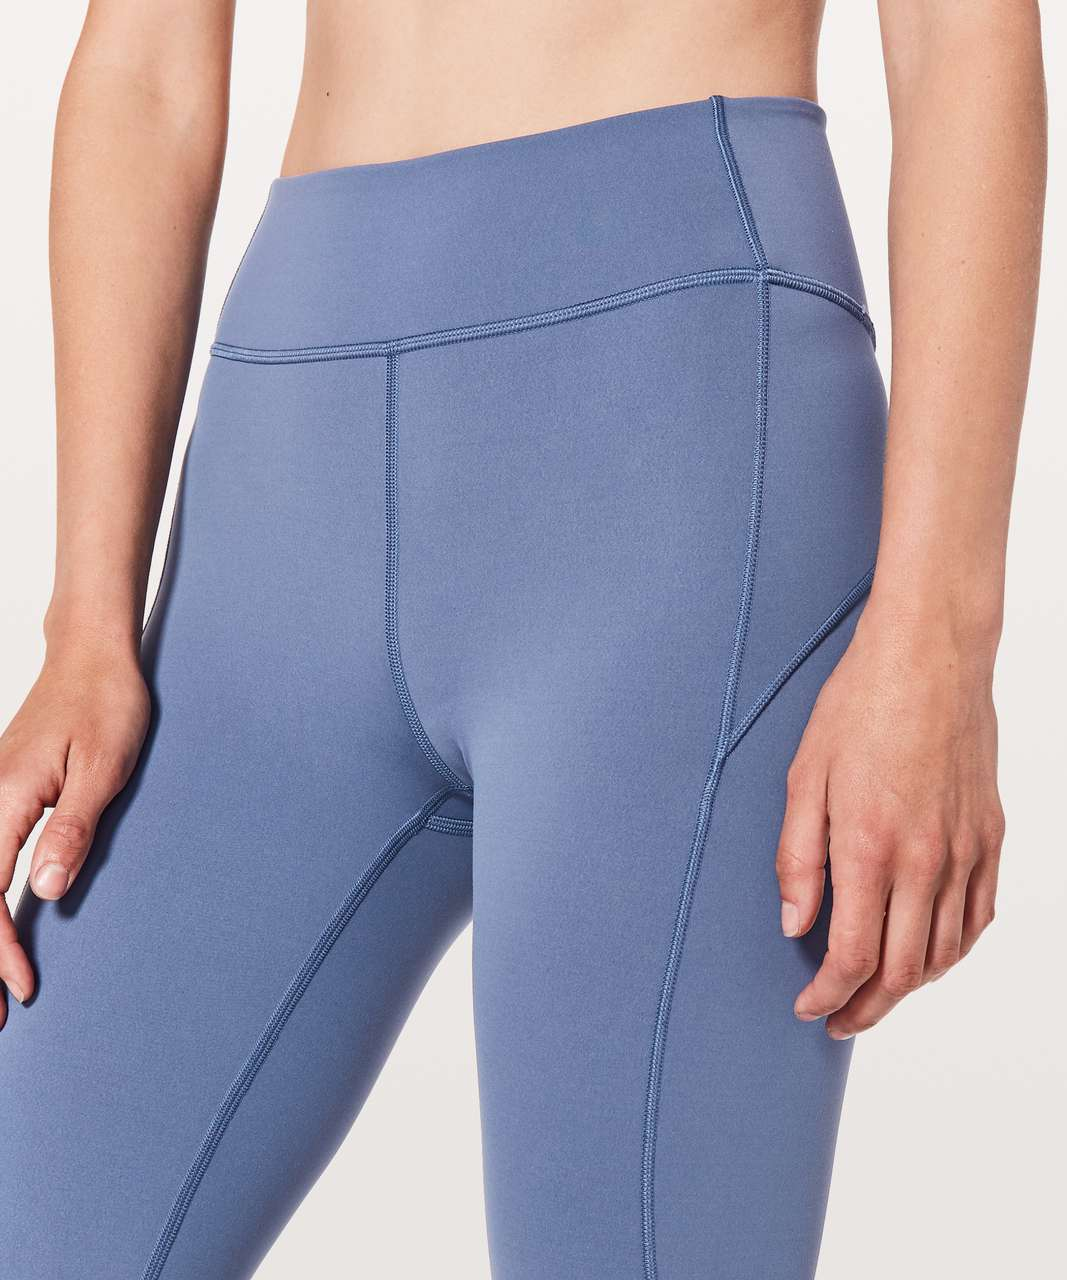 "Lululemon In Movement 7/8 Tight *Everlux 25"" - Brilliant Blue"